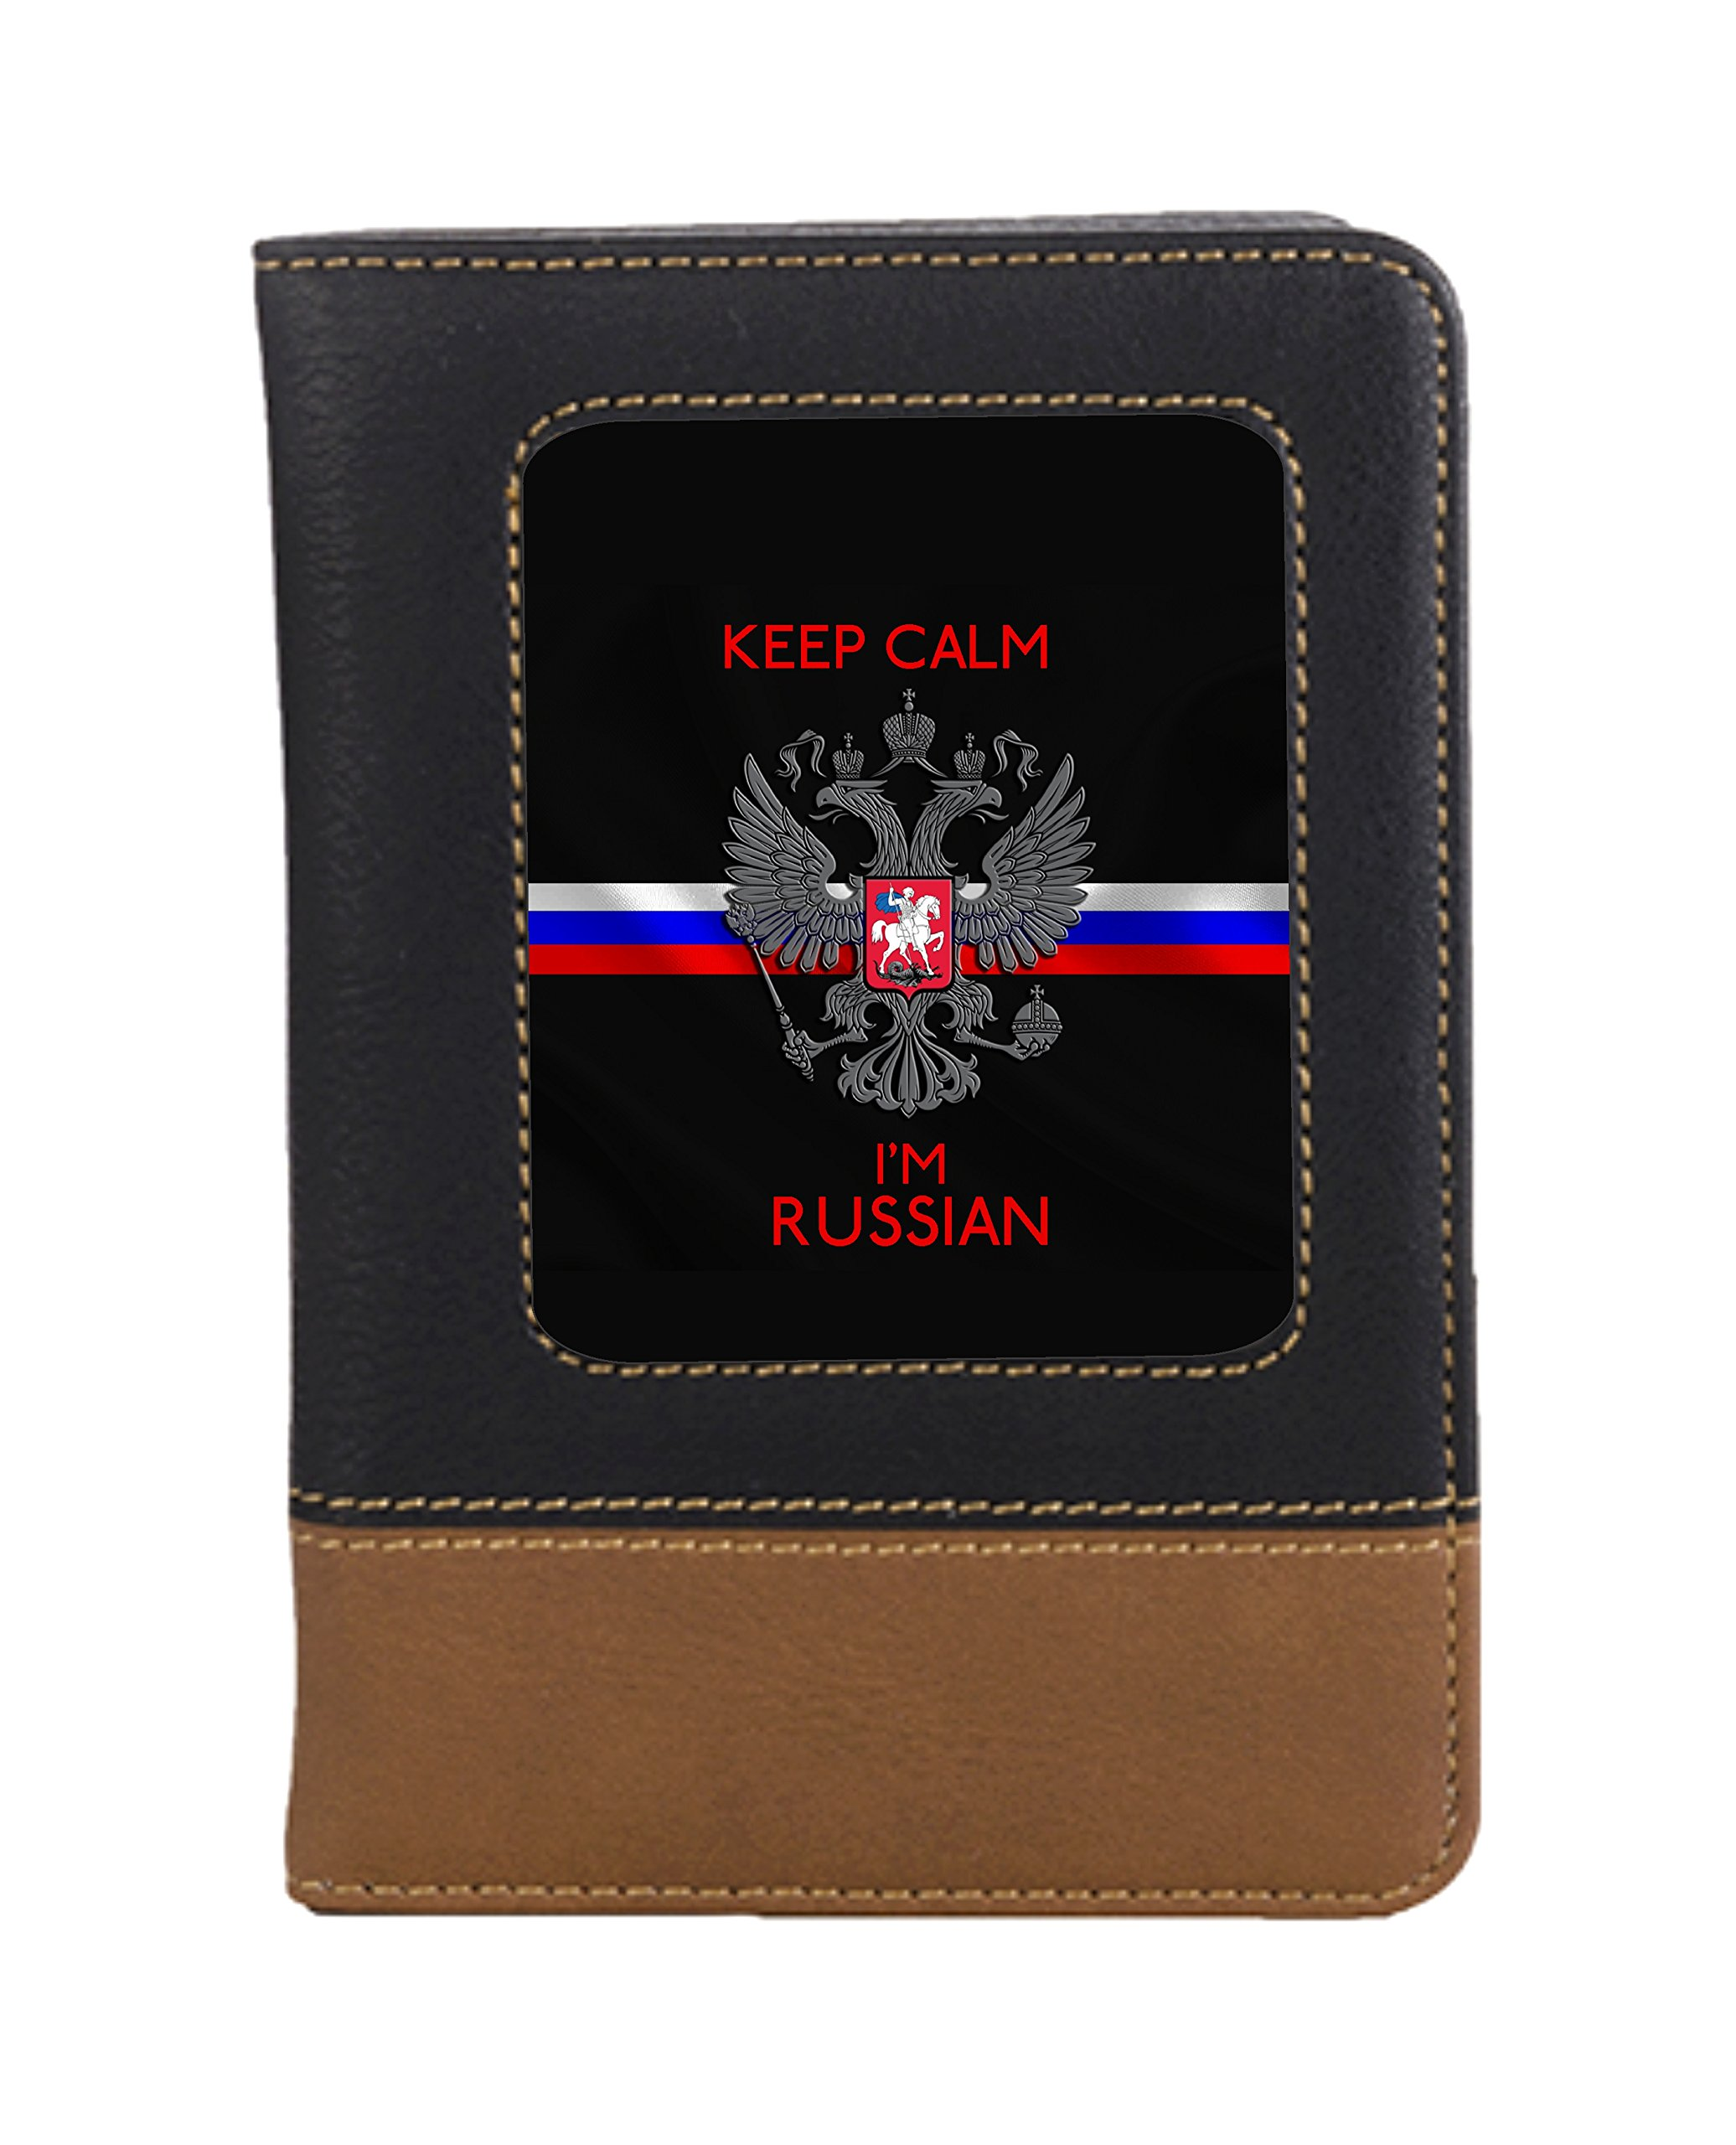 Russian Leatherette Travel Passport Wallet Case Cover with Card Slots